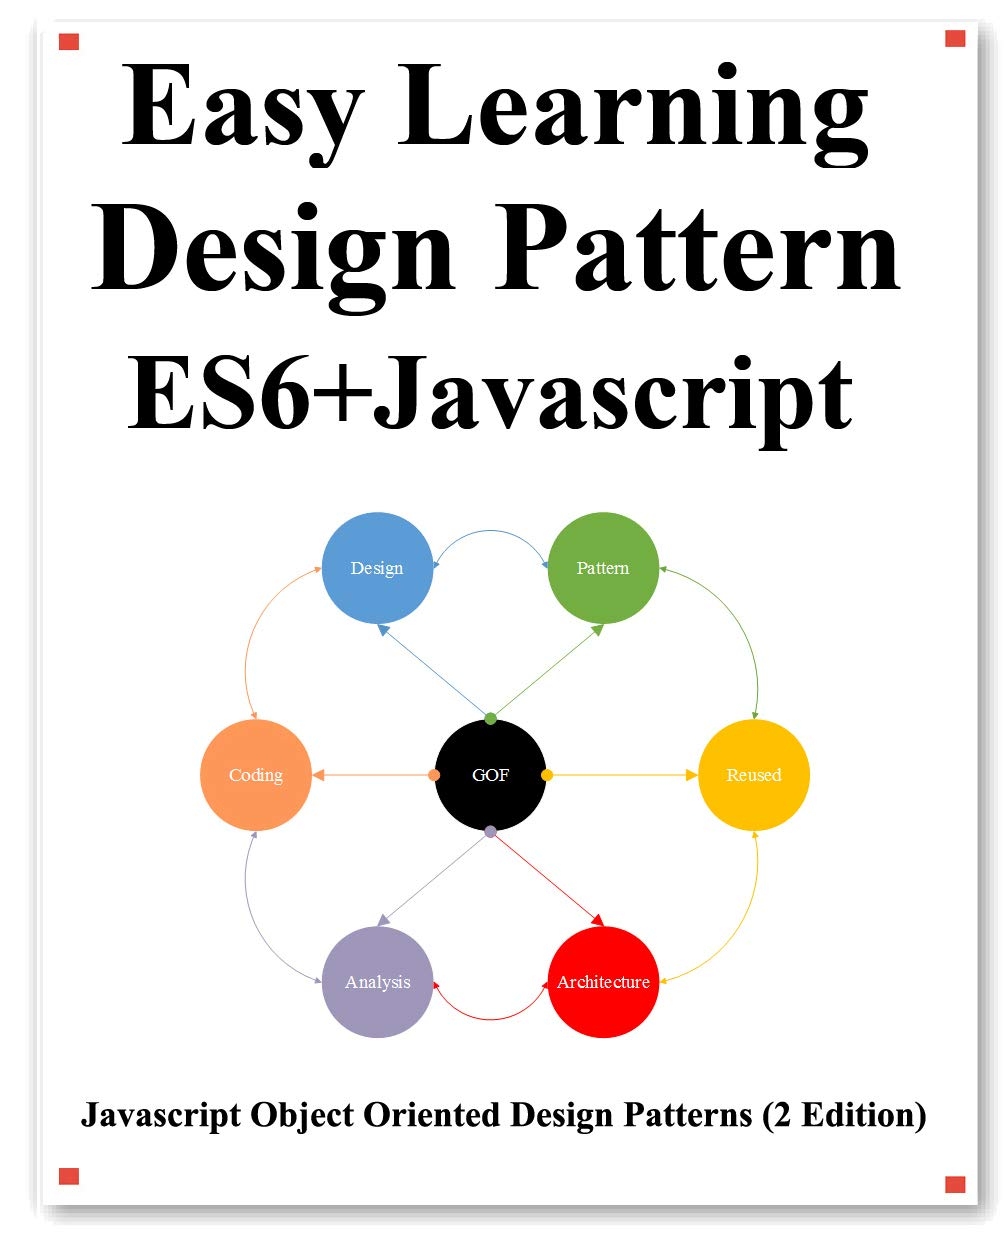 Easy Learning Design Patterns ES6+ Javascript (2 Edition): Build Clean and Reusable Object-Oriented Code